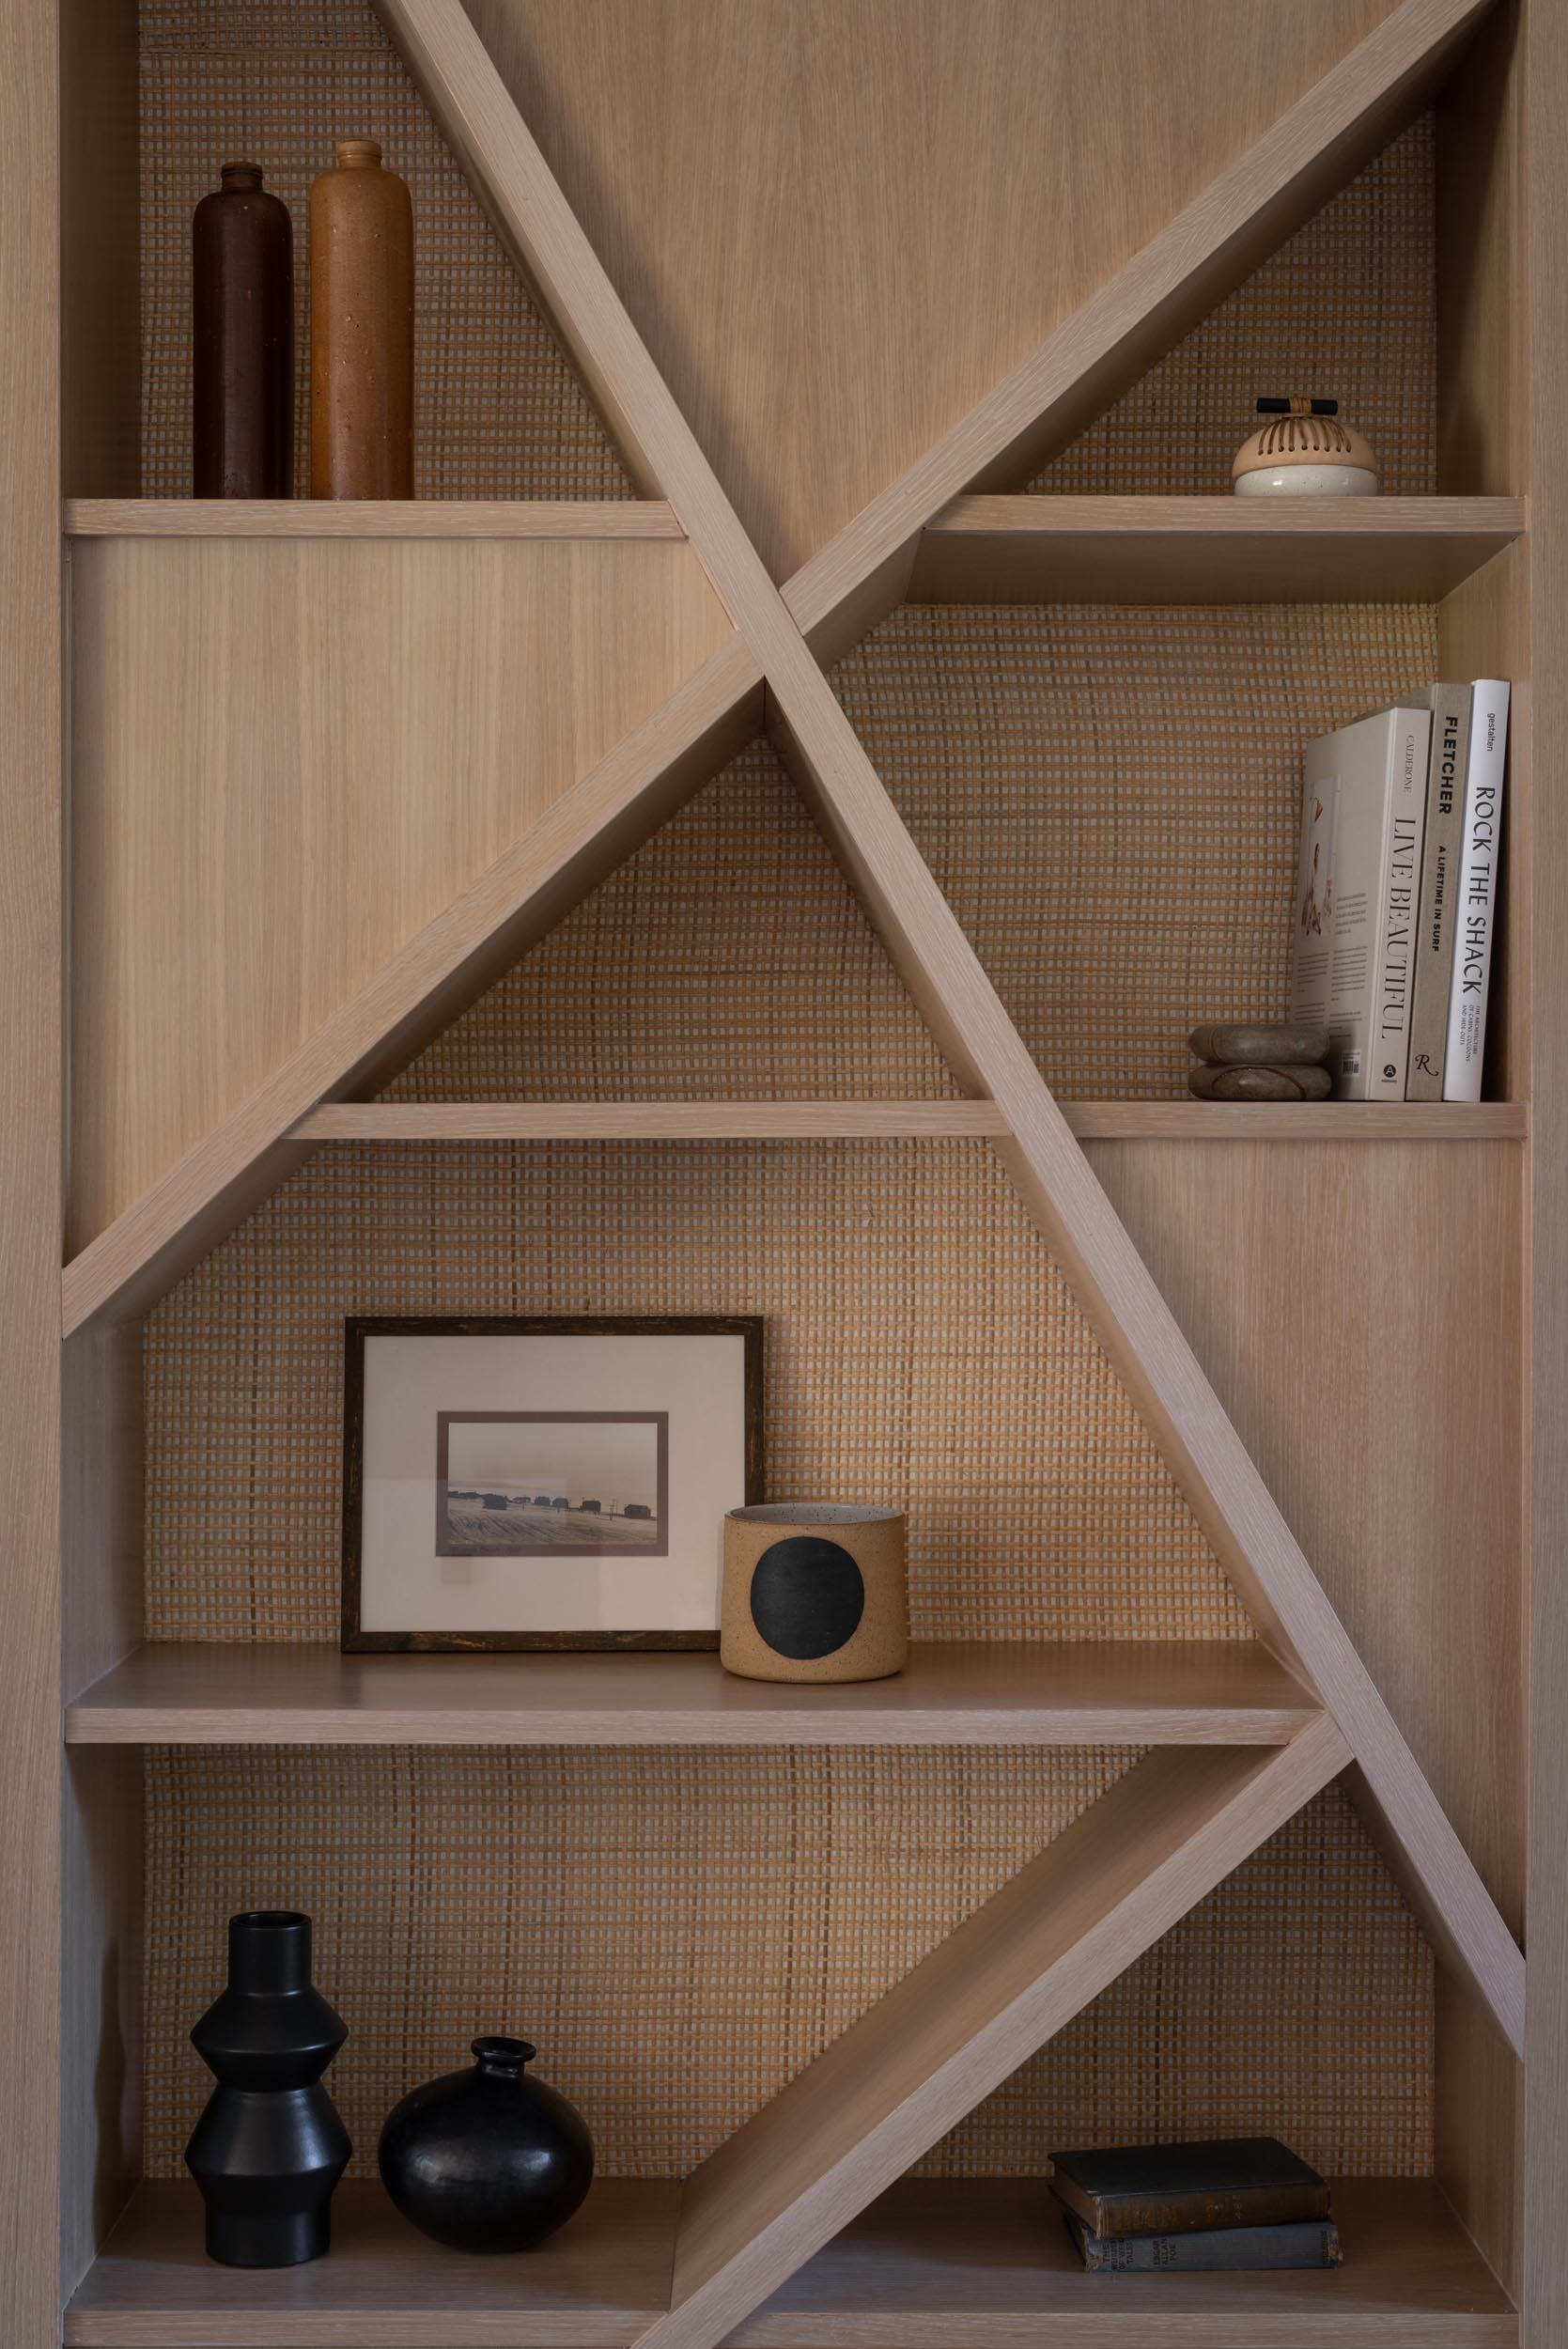 A modern wood shelving unit with a natural cane backing.